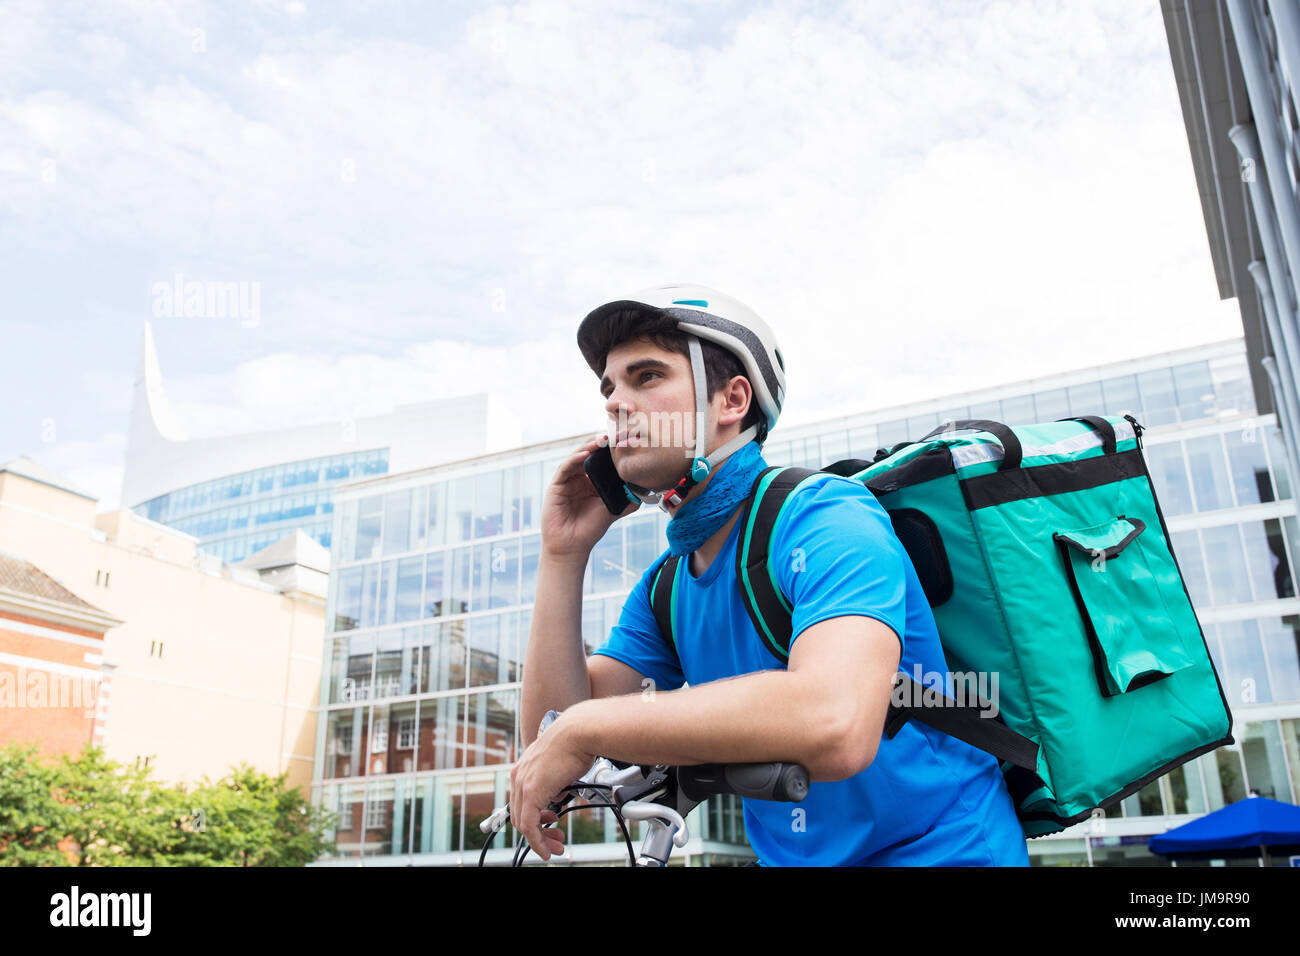 Courier On Bicycle Delivering Food In City Using Mobile Phone Stock Photo